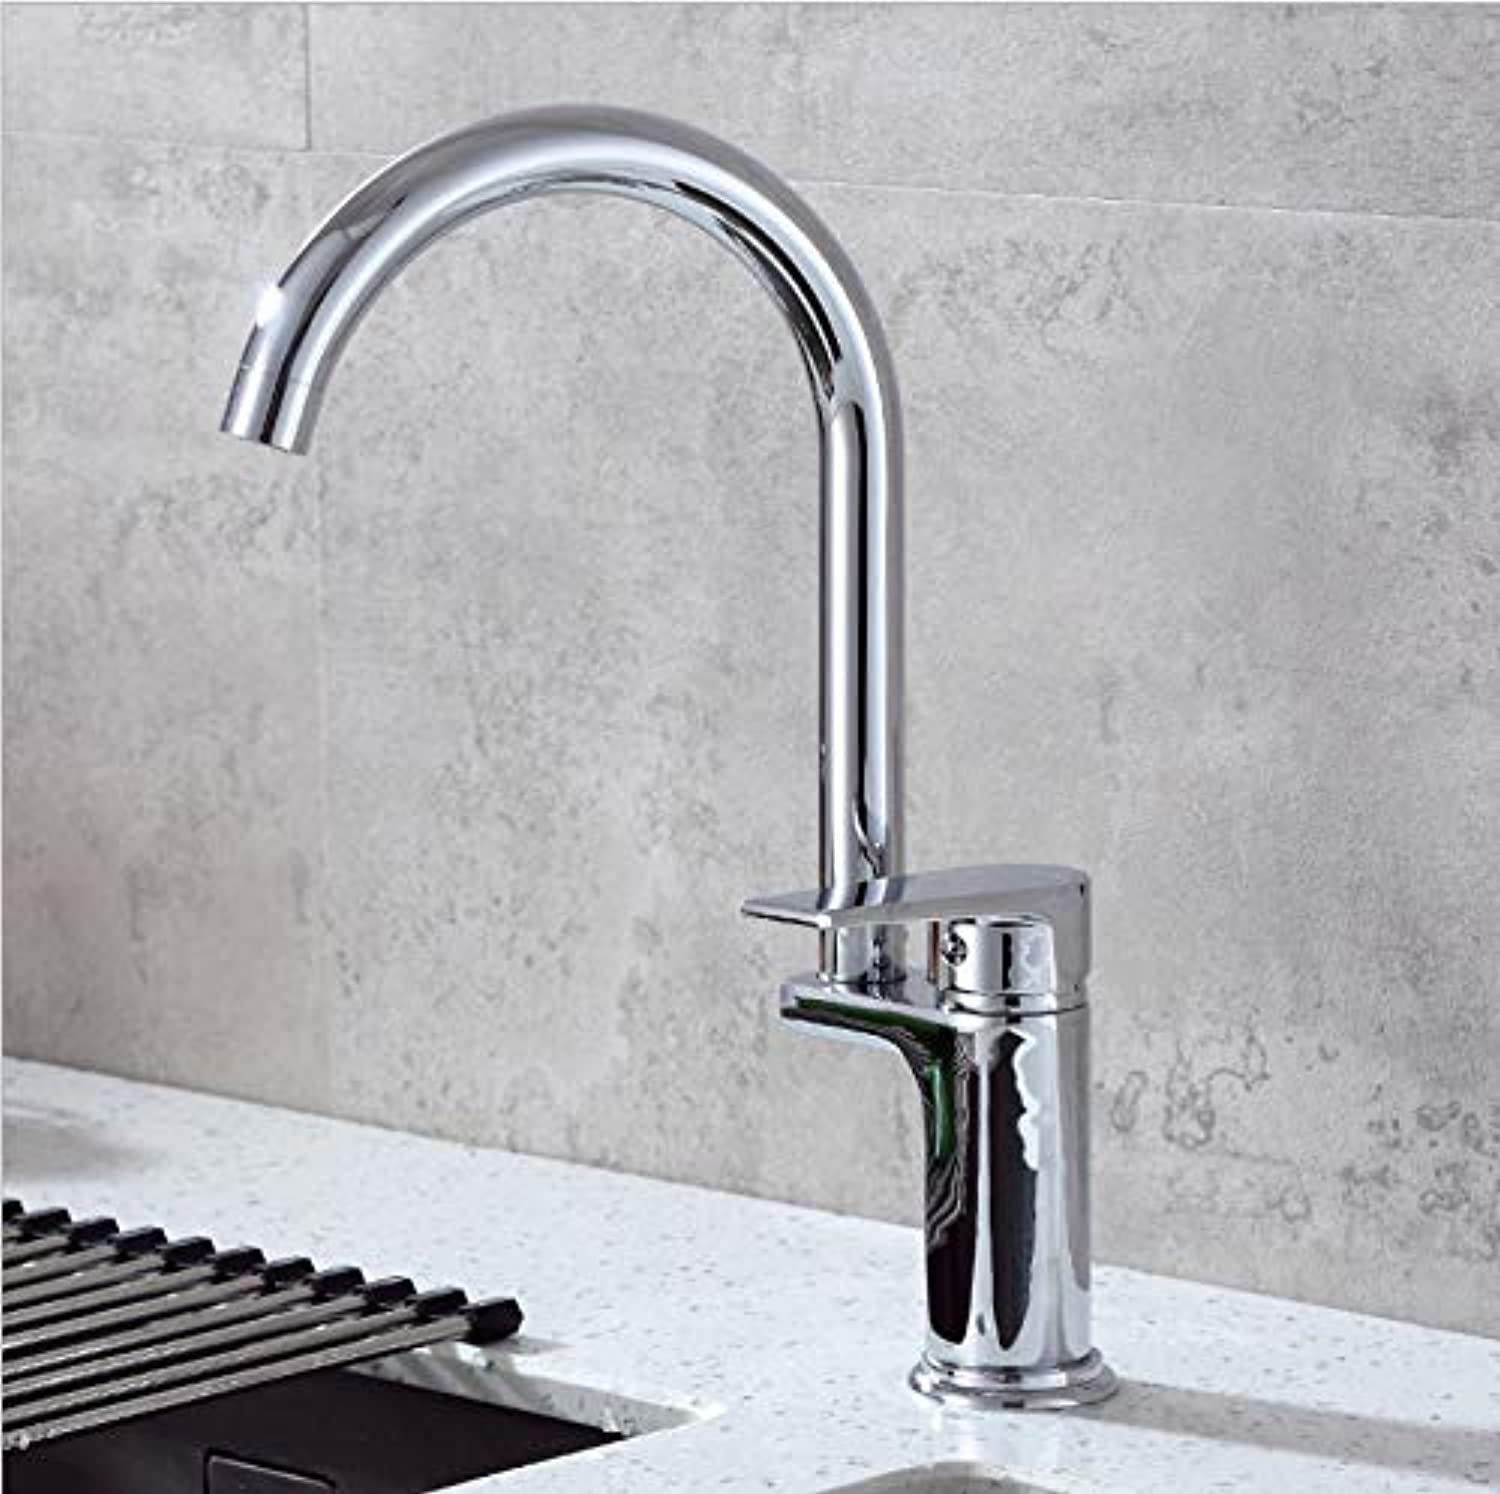 ROKTONG Kitchen Faucet Kitchen Faucet, Hot And Cold Water Sink Sink Faucet